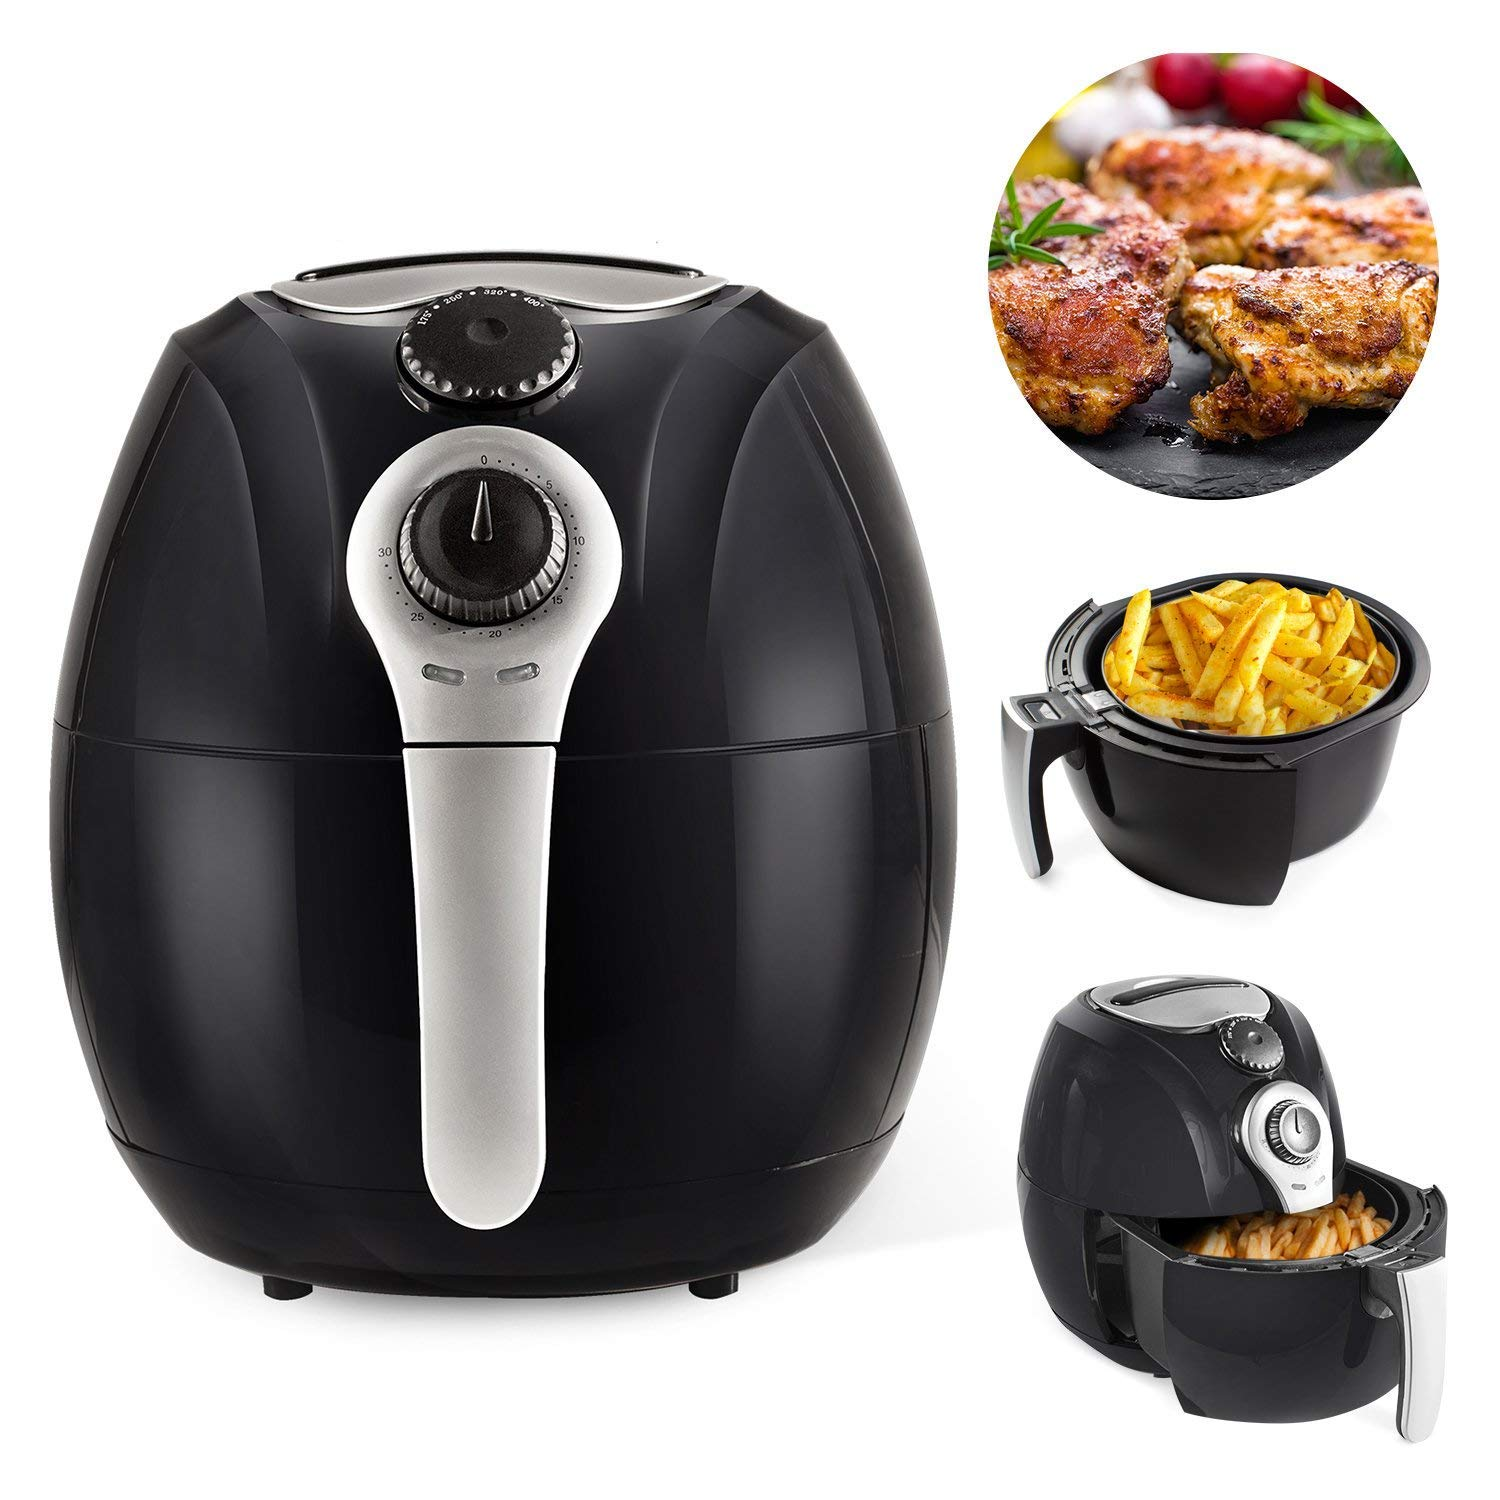 Simple Chef Air Fryer SC2AIRFY – Air Fryer For Healthy Oil Free Cooking – 3.5L Capacity w Dishwasher Safe Parts